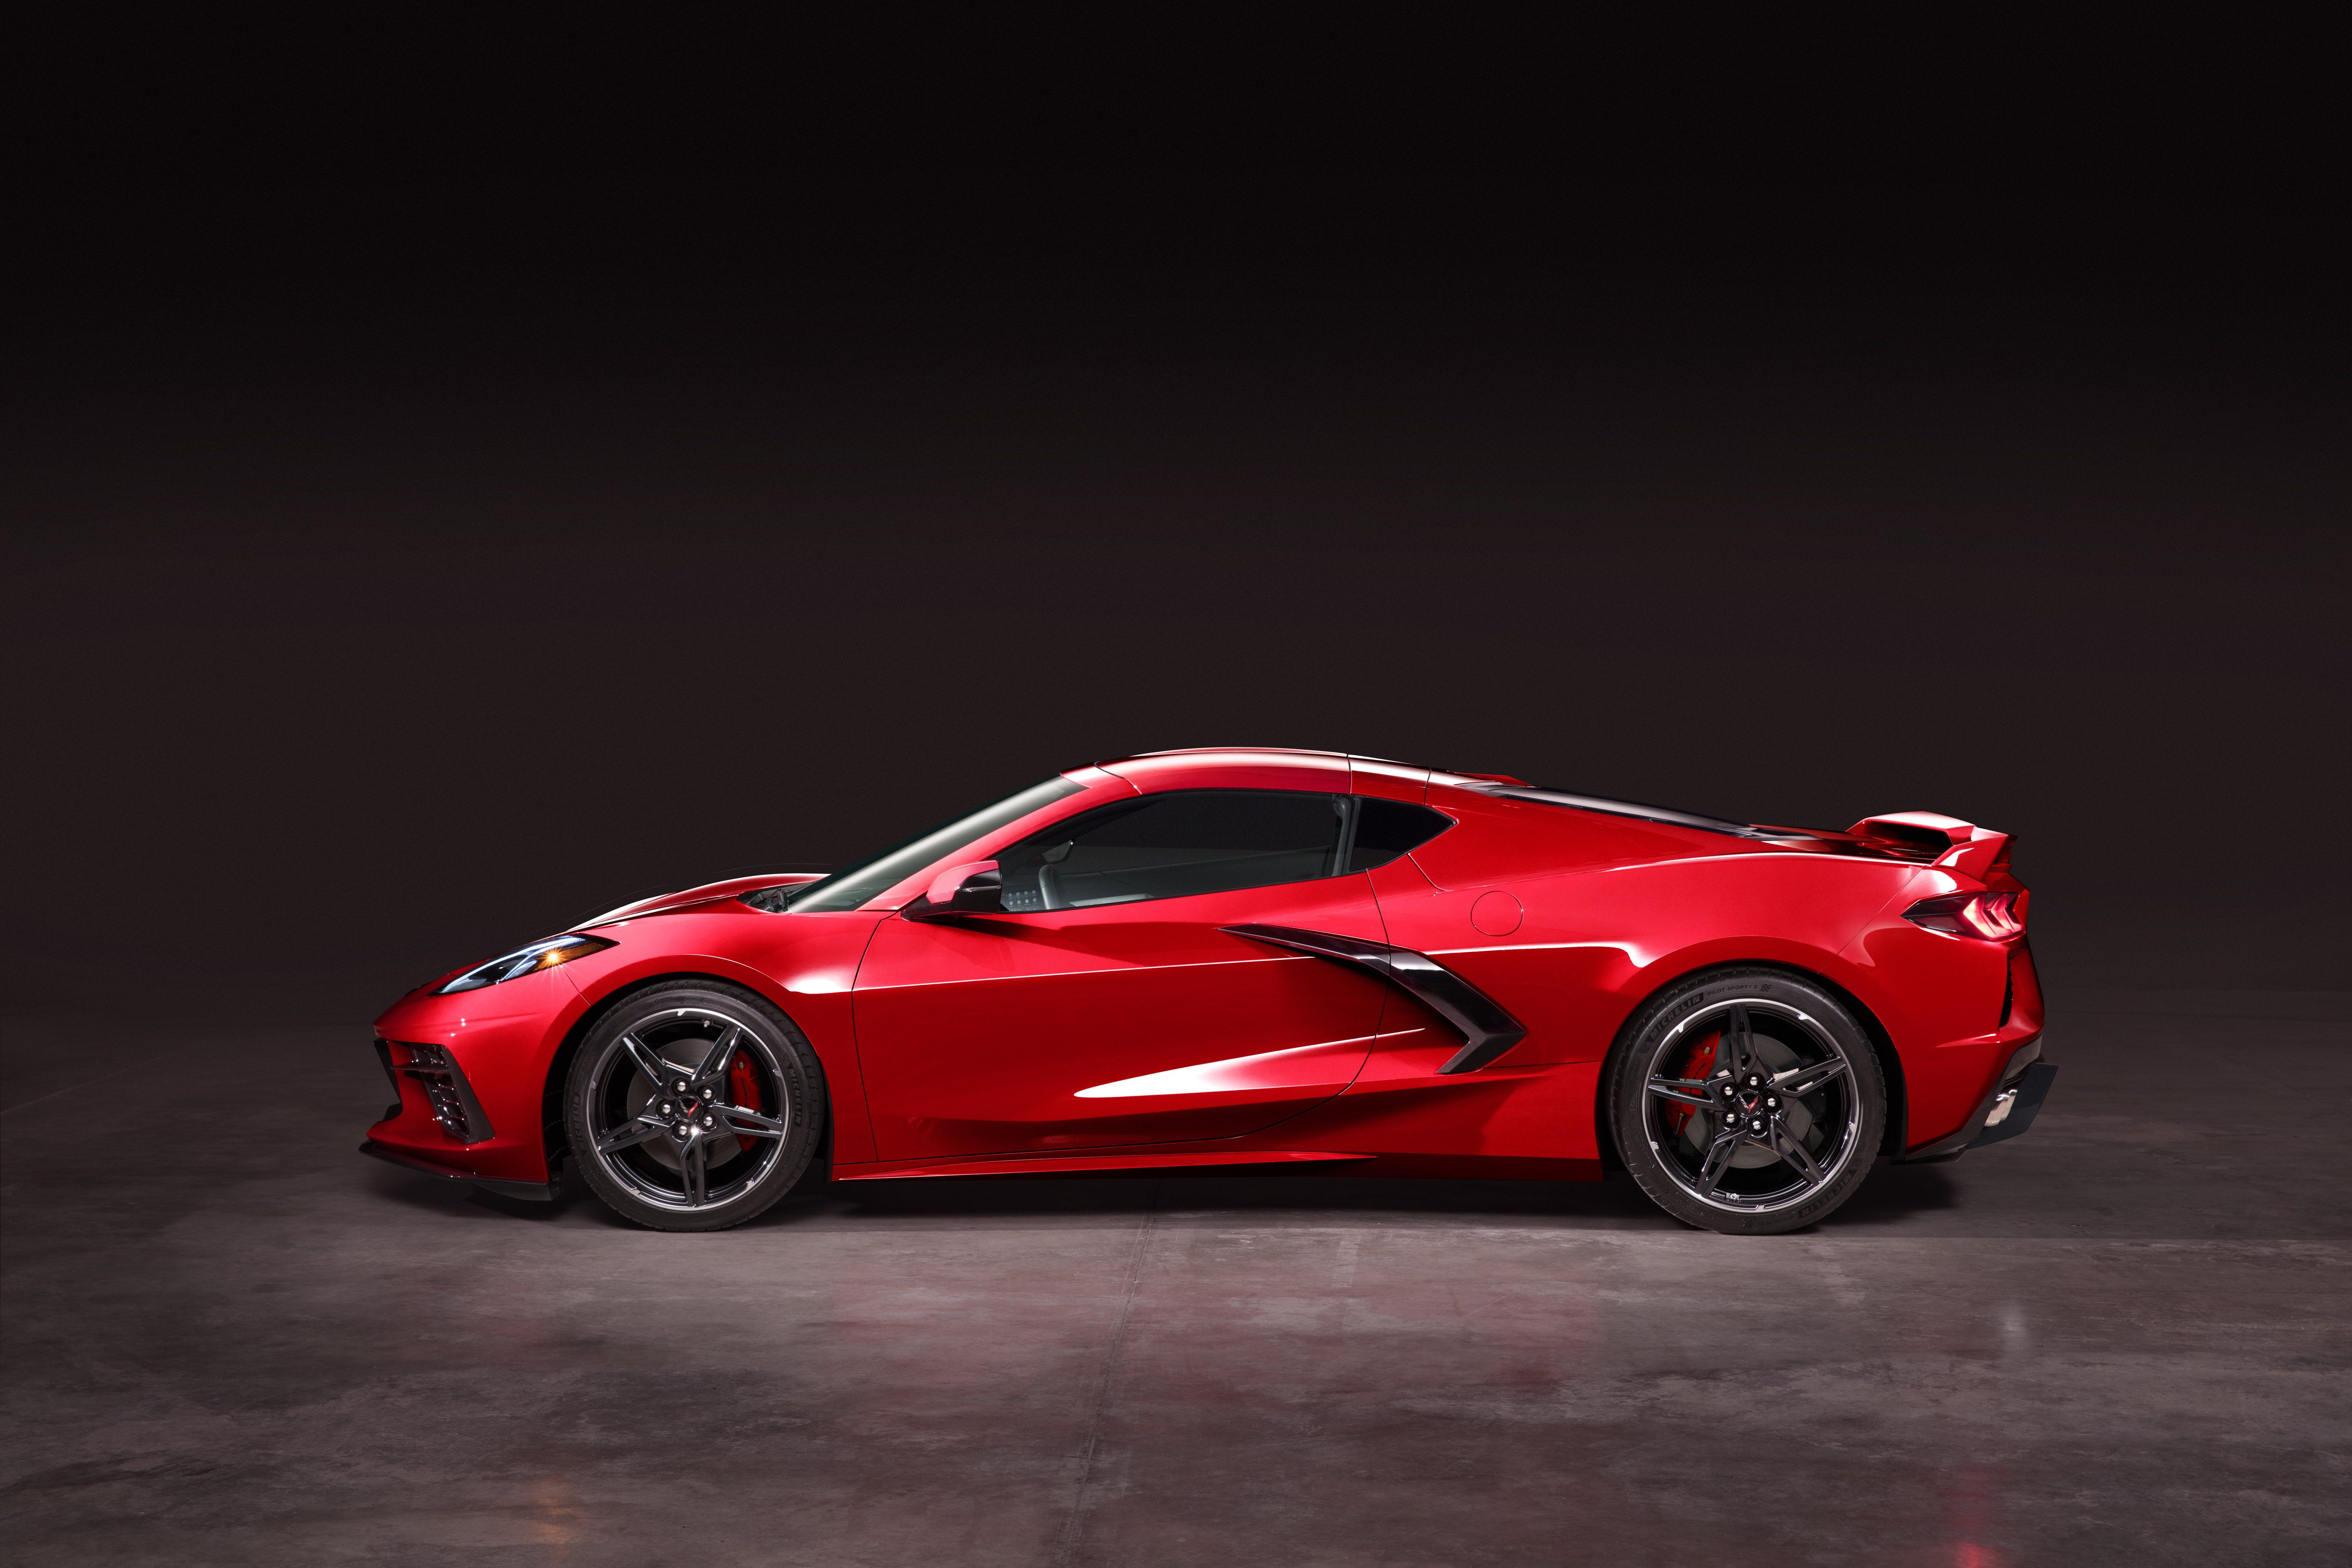 The 2020 Chevrolet C8 Corvette S Doors Are Designed To Work Like Bass Boxes Top Speed Chevrolet Corvette Stingray Chevrolet Corvette Corvette Stingray